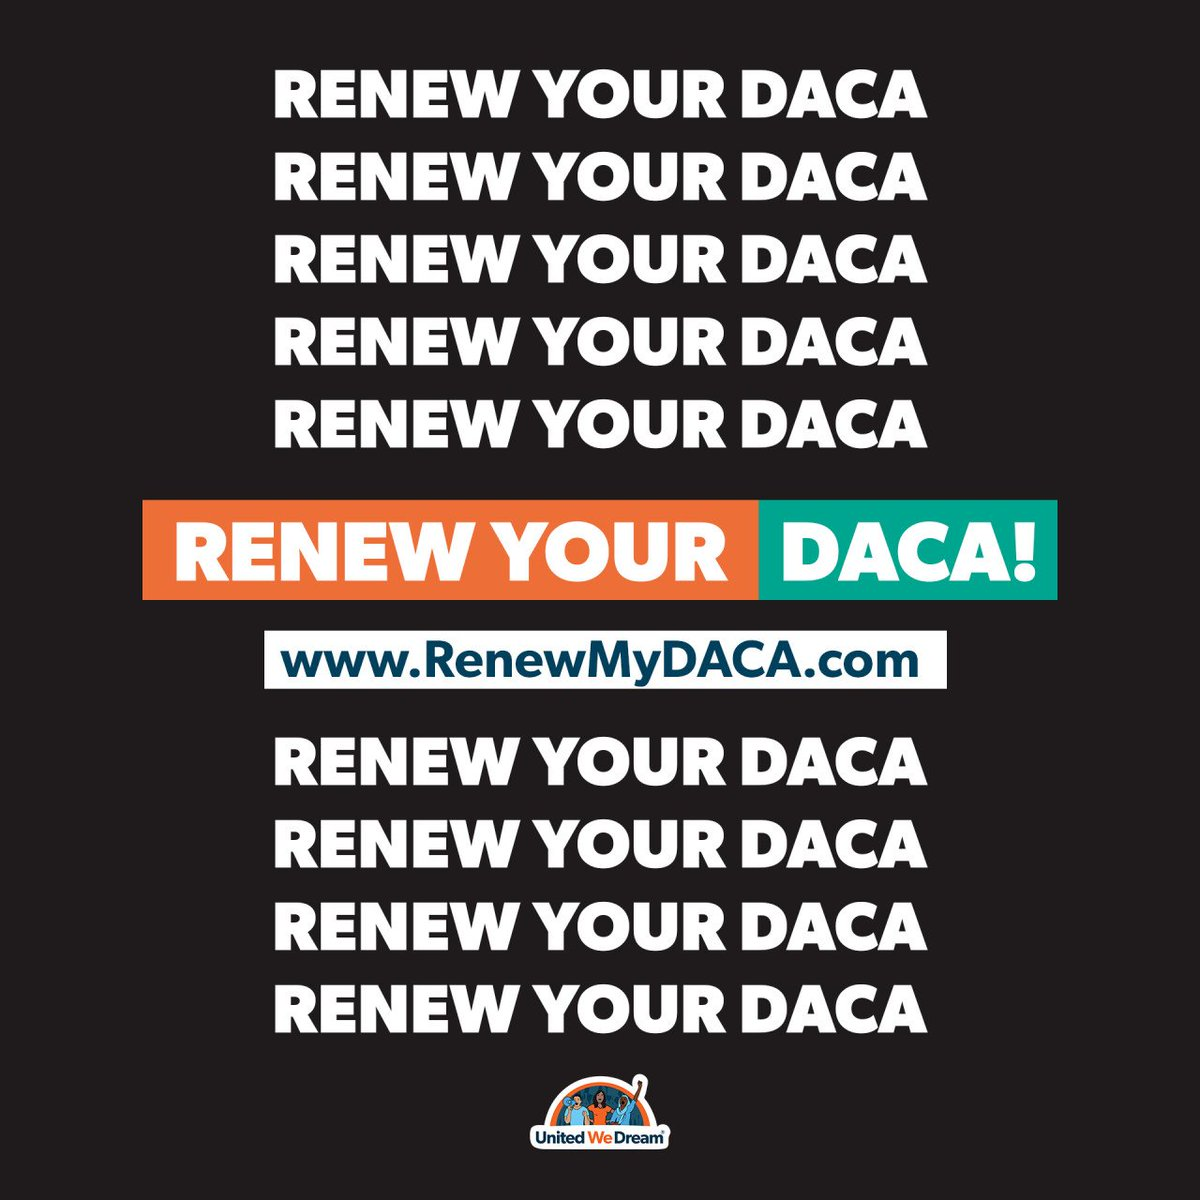 Despite Trump's attacks, the #DACA program is still alive for those who can renew! #HereToStay Find out how you can renew TODAY: RenewMyDACA.com